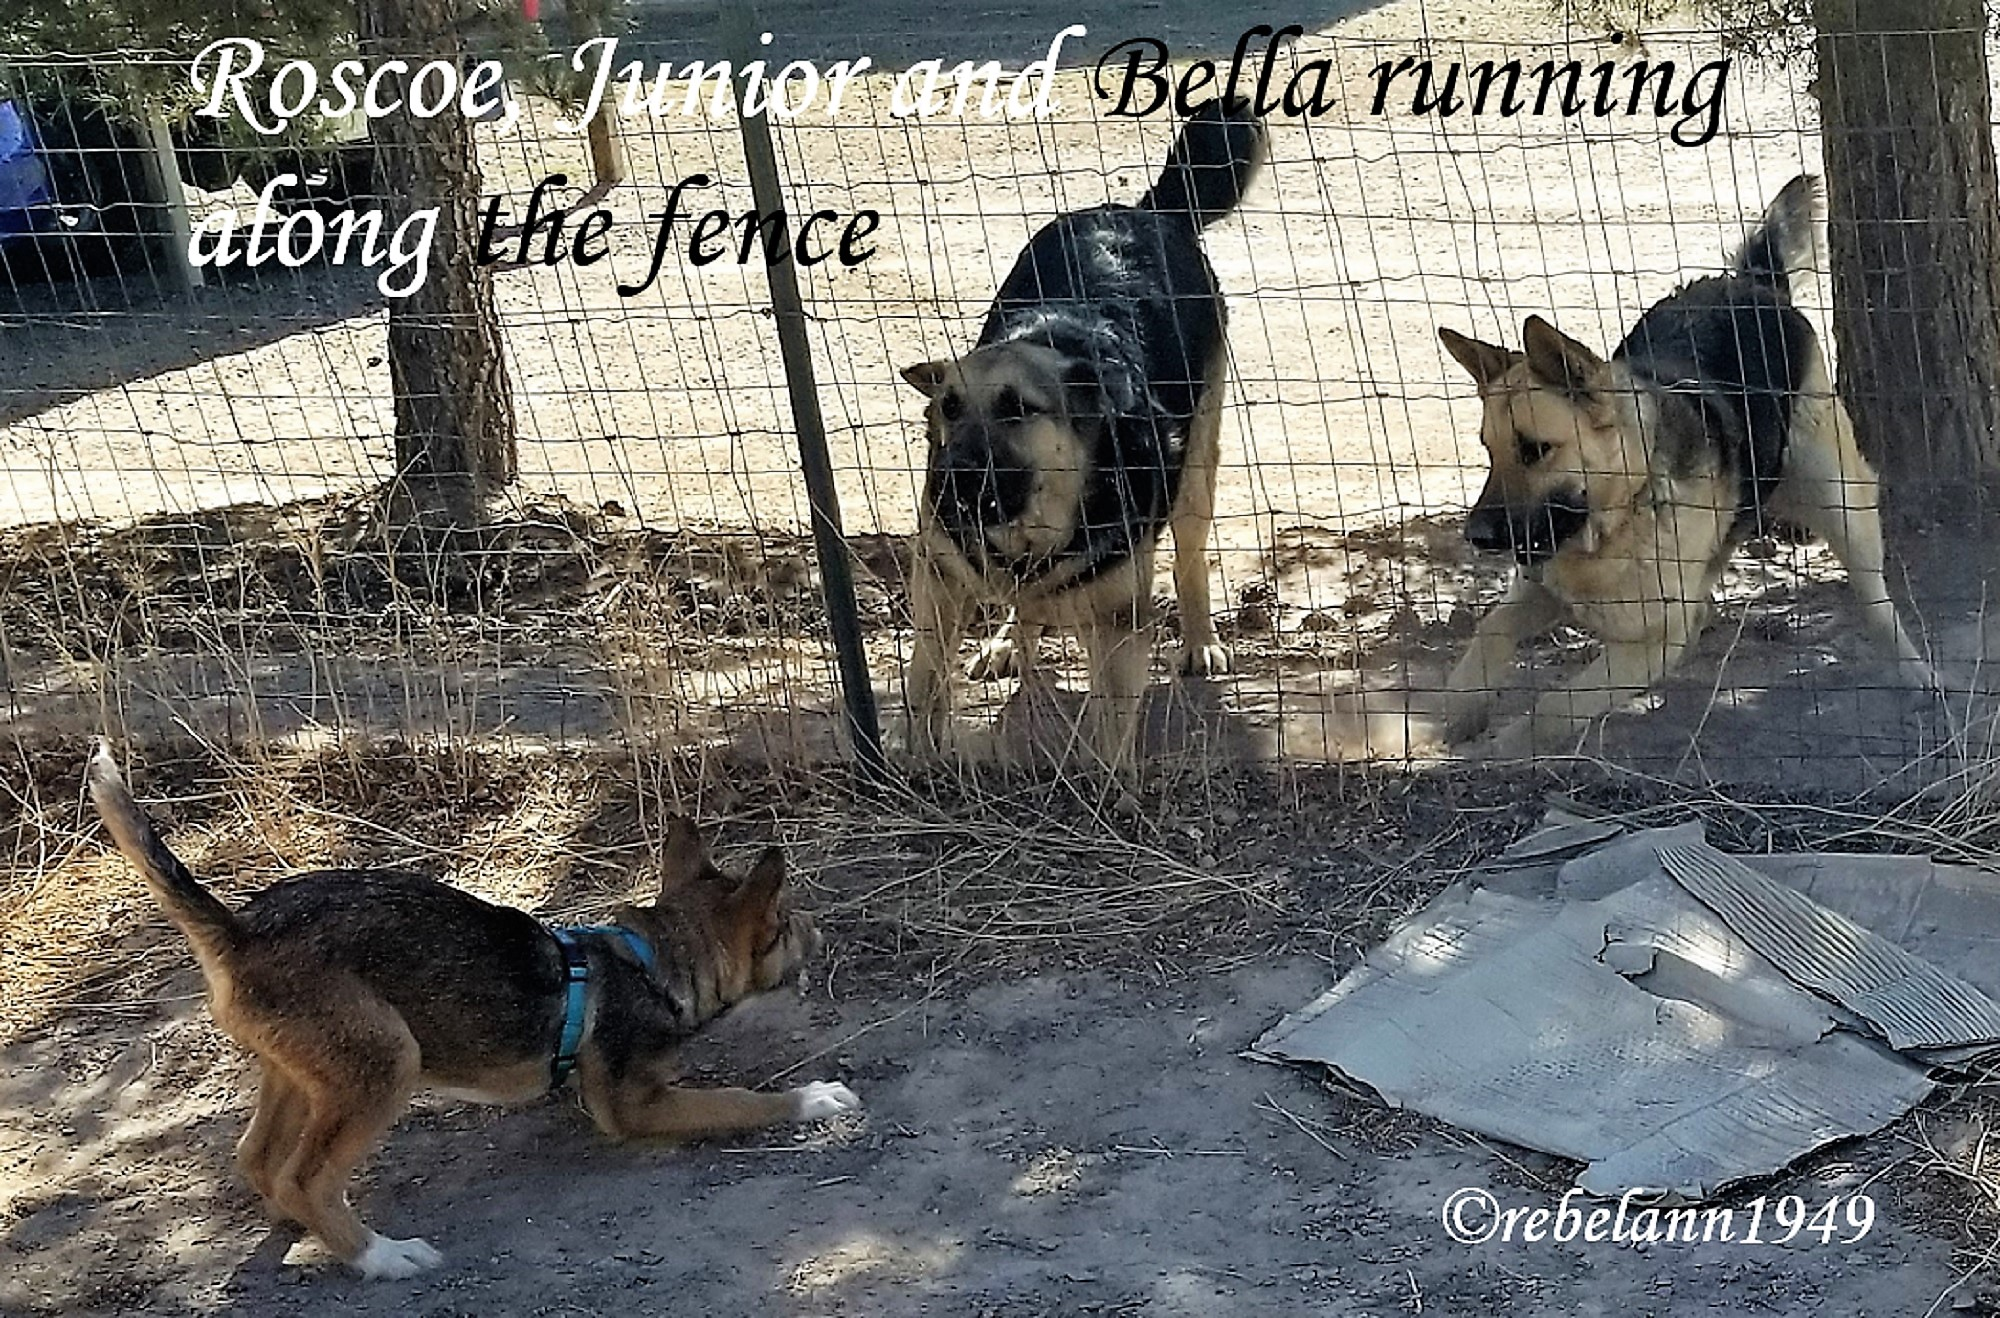 Roscoe is having a blast running with his pals along the fence line.